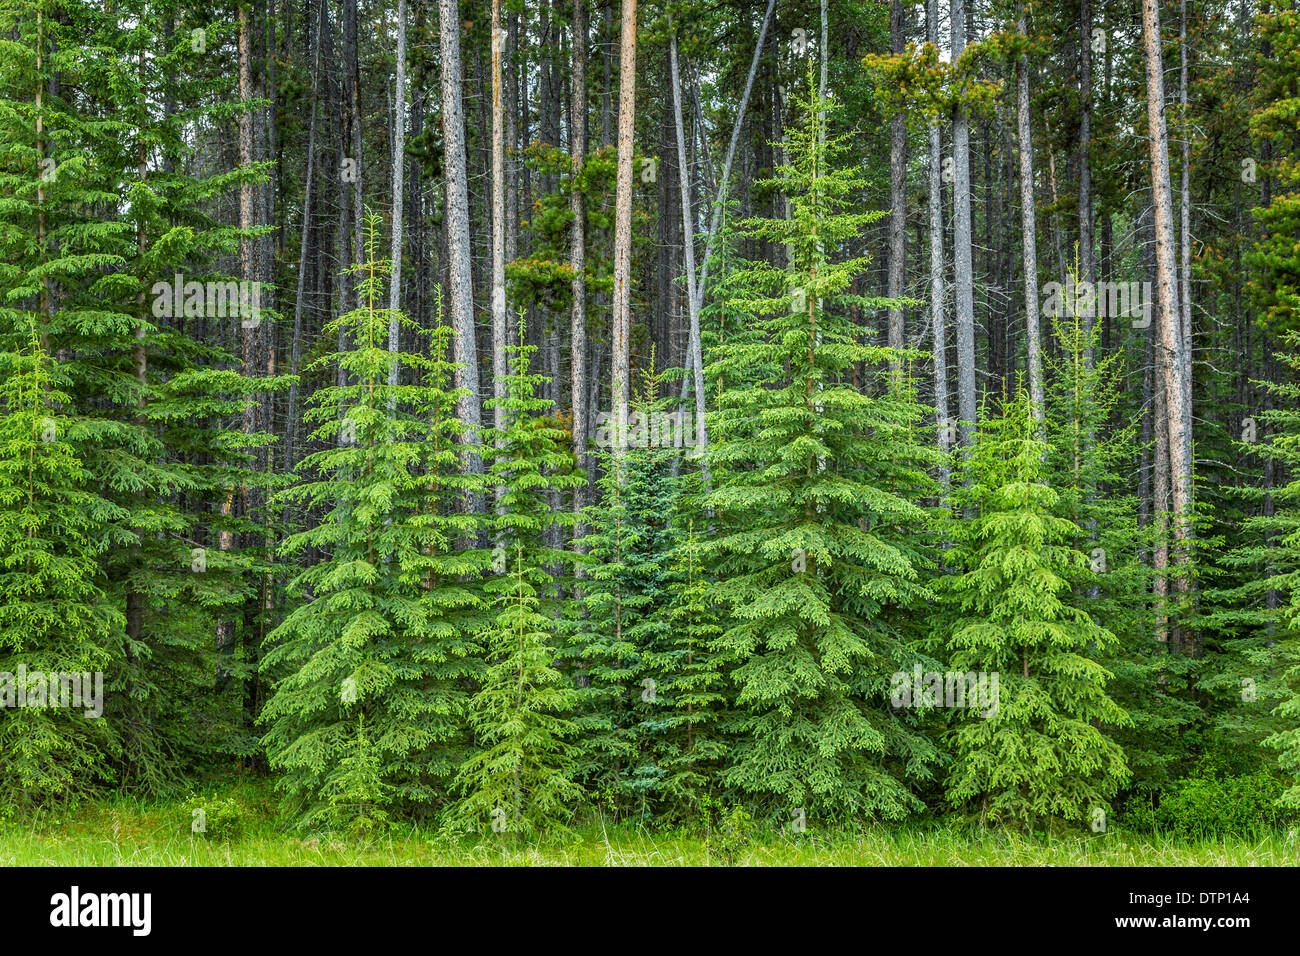 Roadside evergreen trees in Jasper National Park, Alberta, Canada. - Stock Image